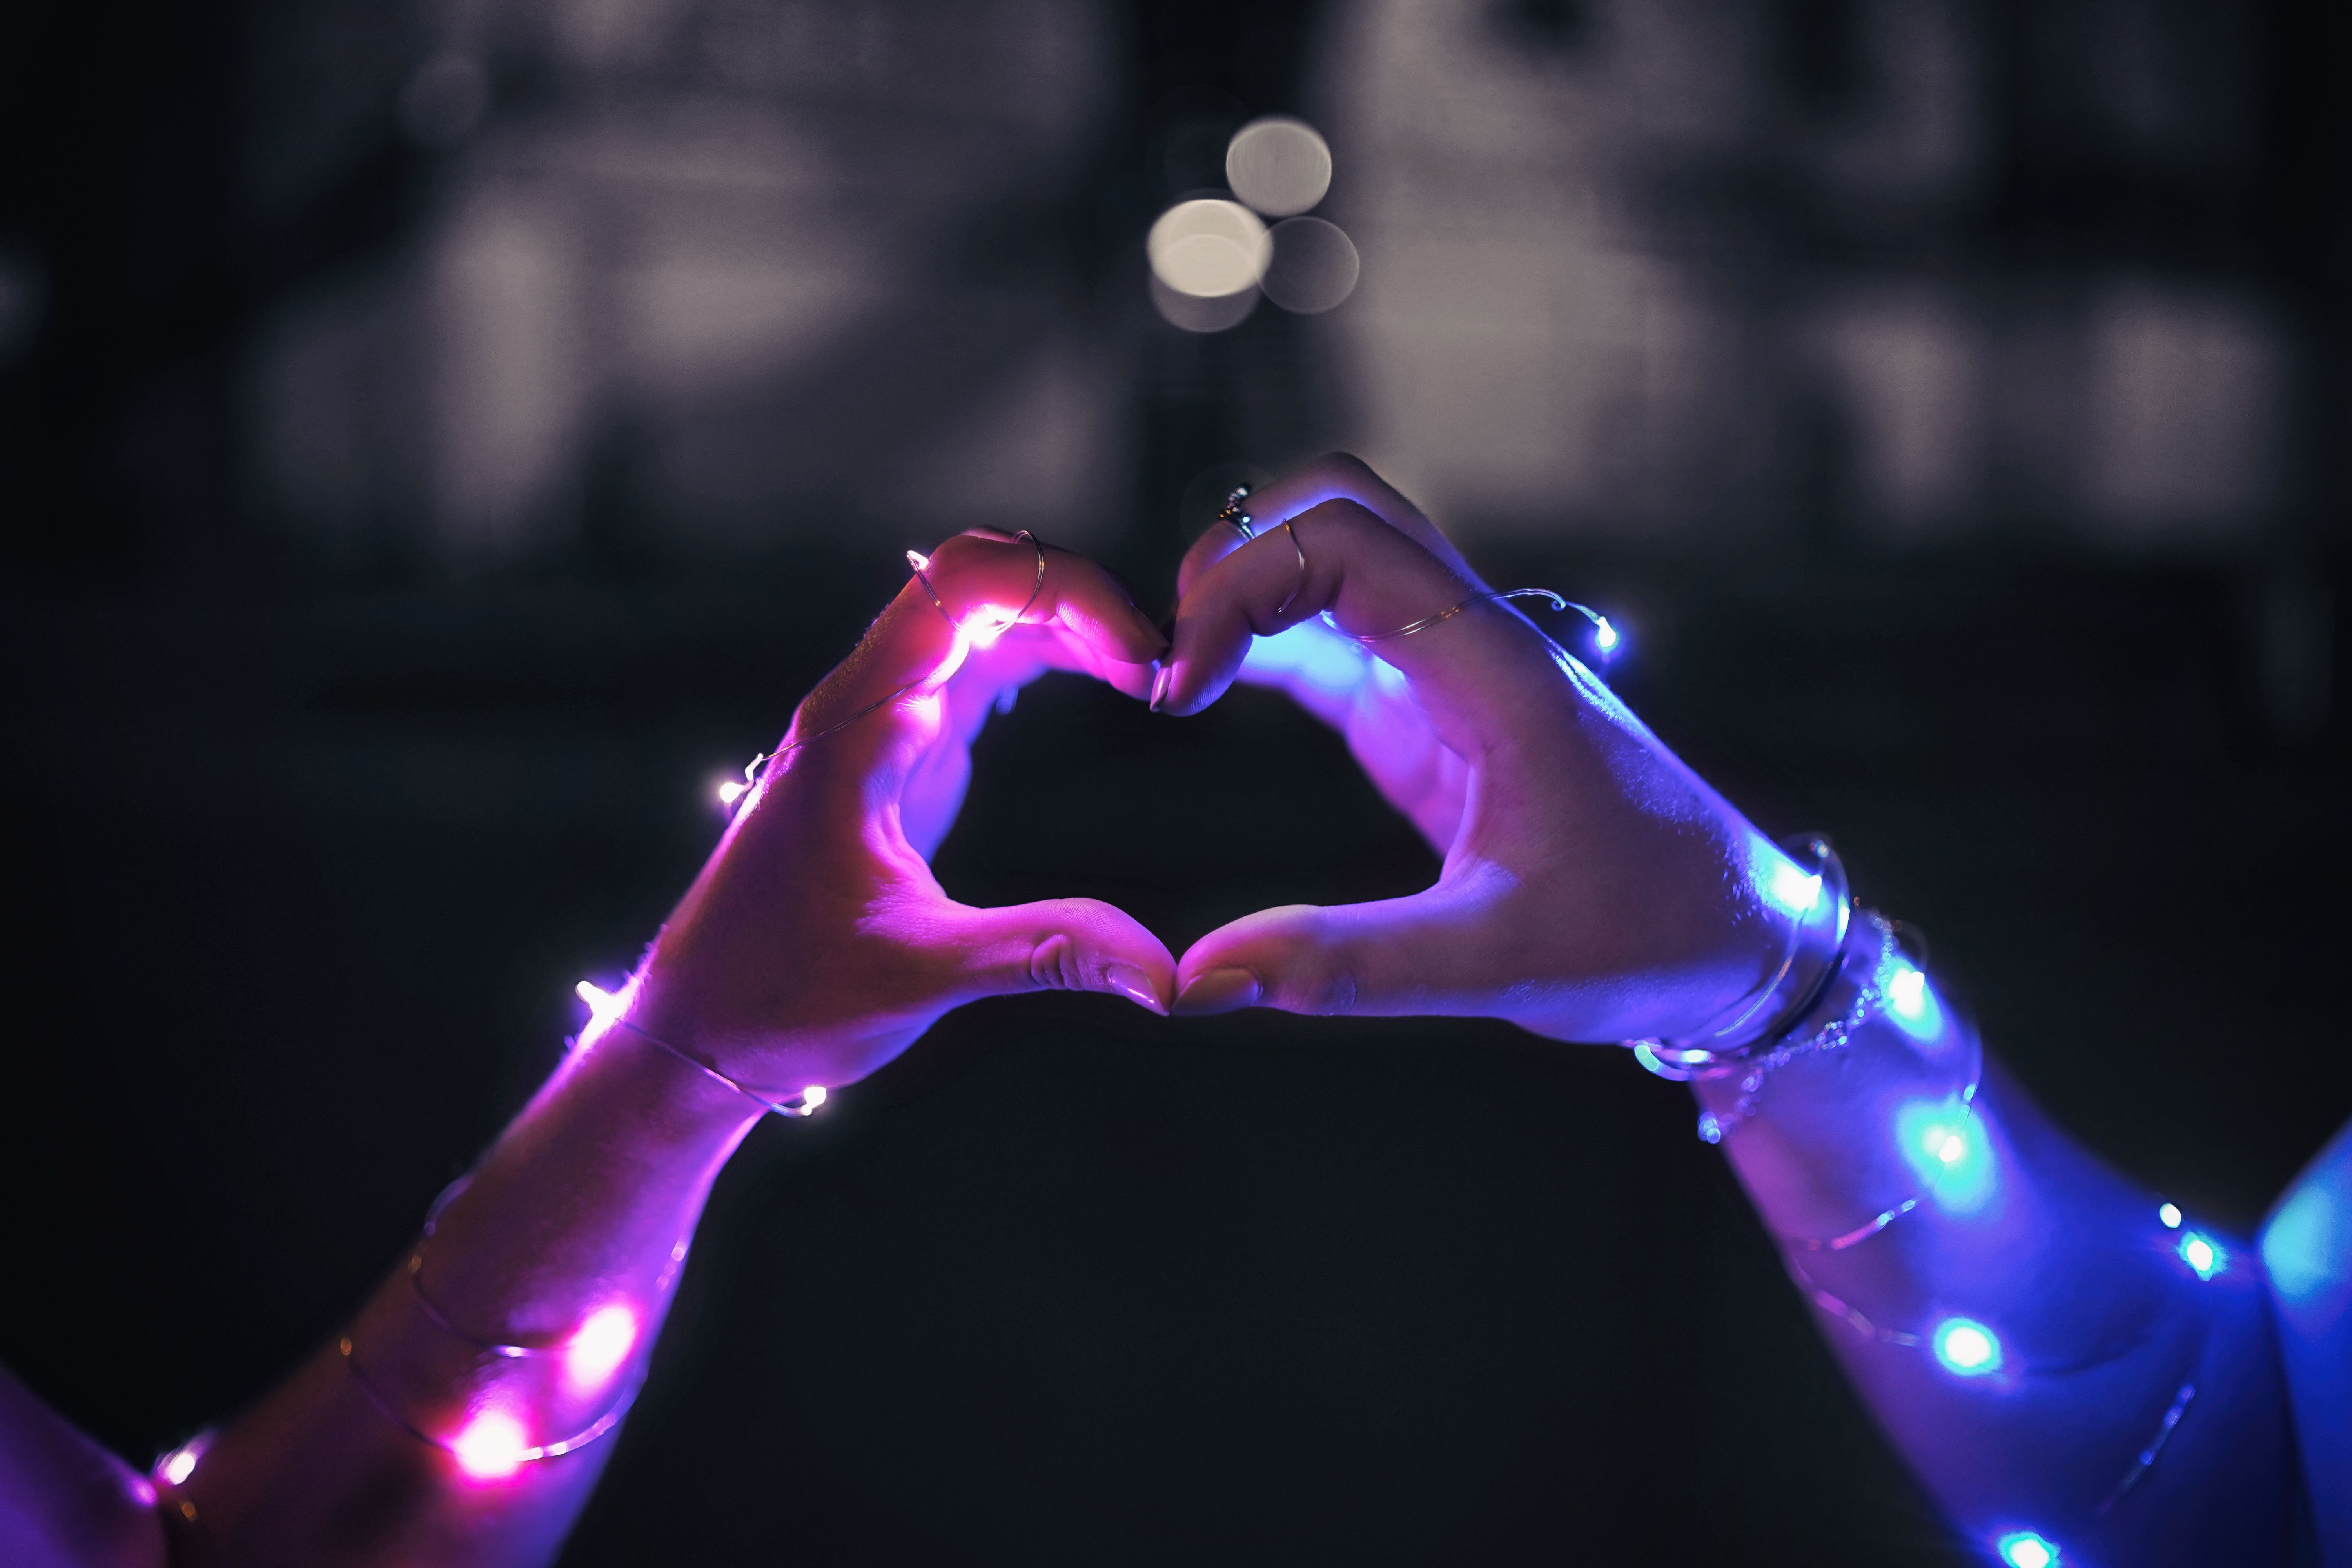 69194 download wallpaper Love, Hands, Heart, Garland, Touching, Touch, Garlands screensavers and pictures for free